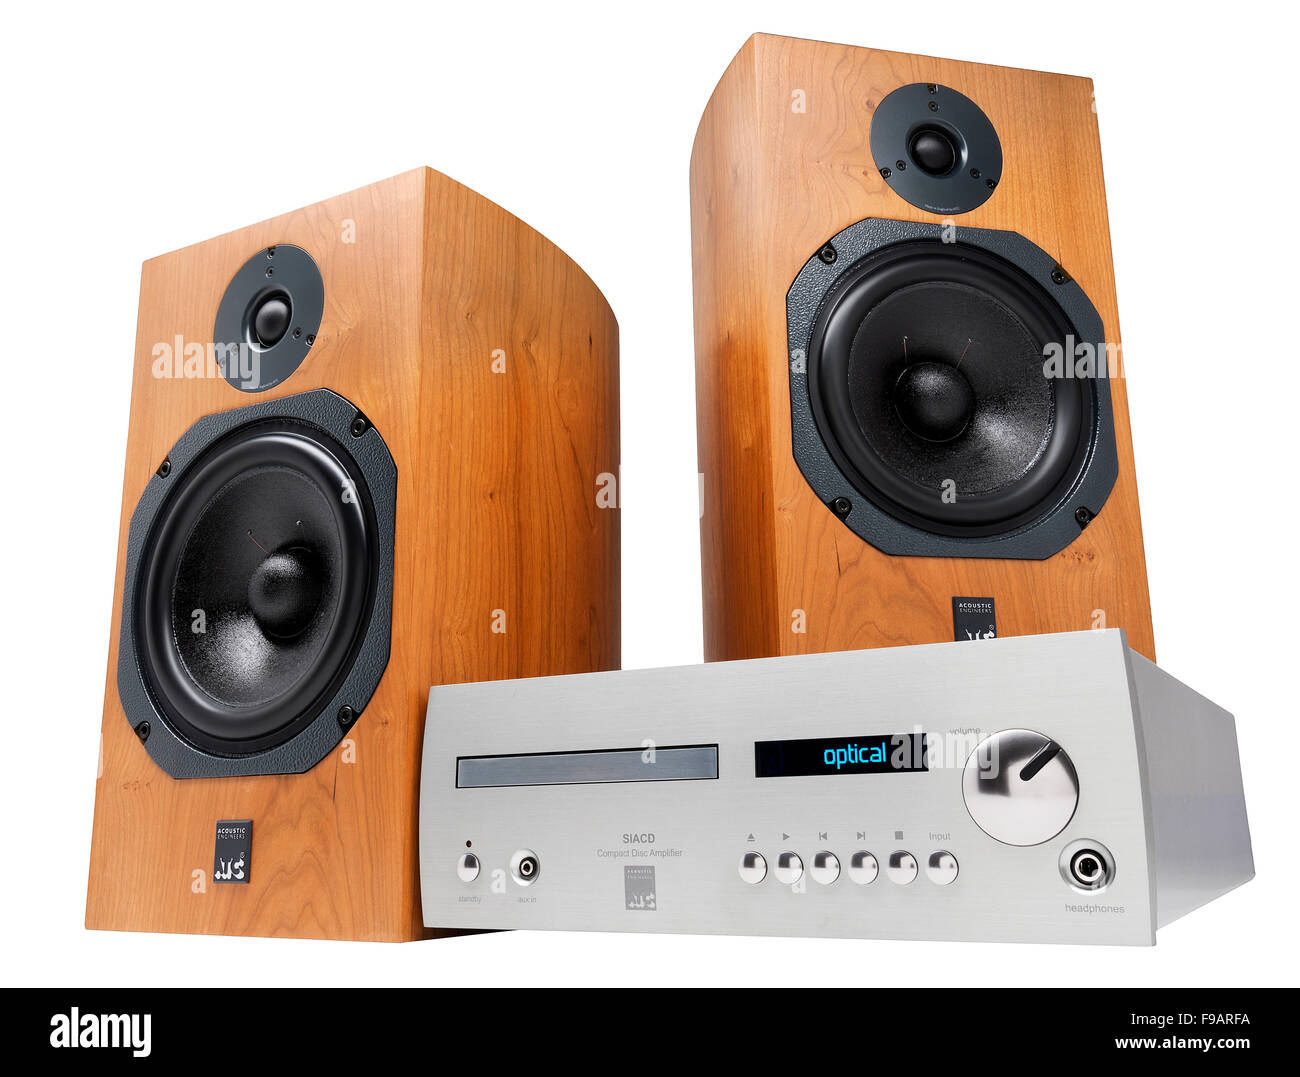 ATC music system. Includes CD player, DAC, amplifier and pair of loudspeakers. - Stock Image